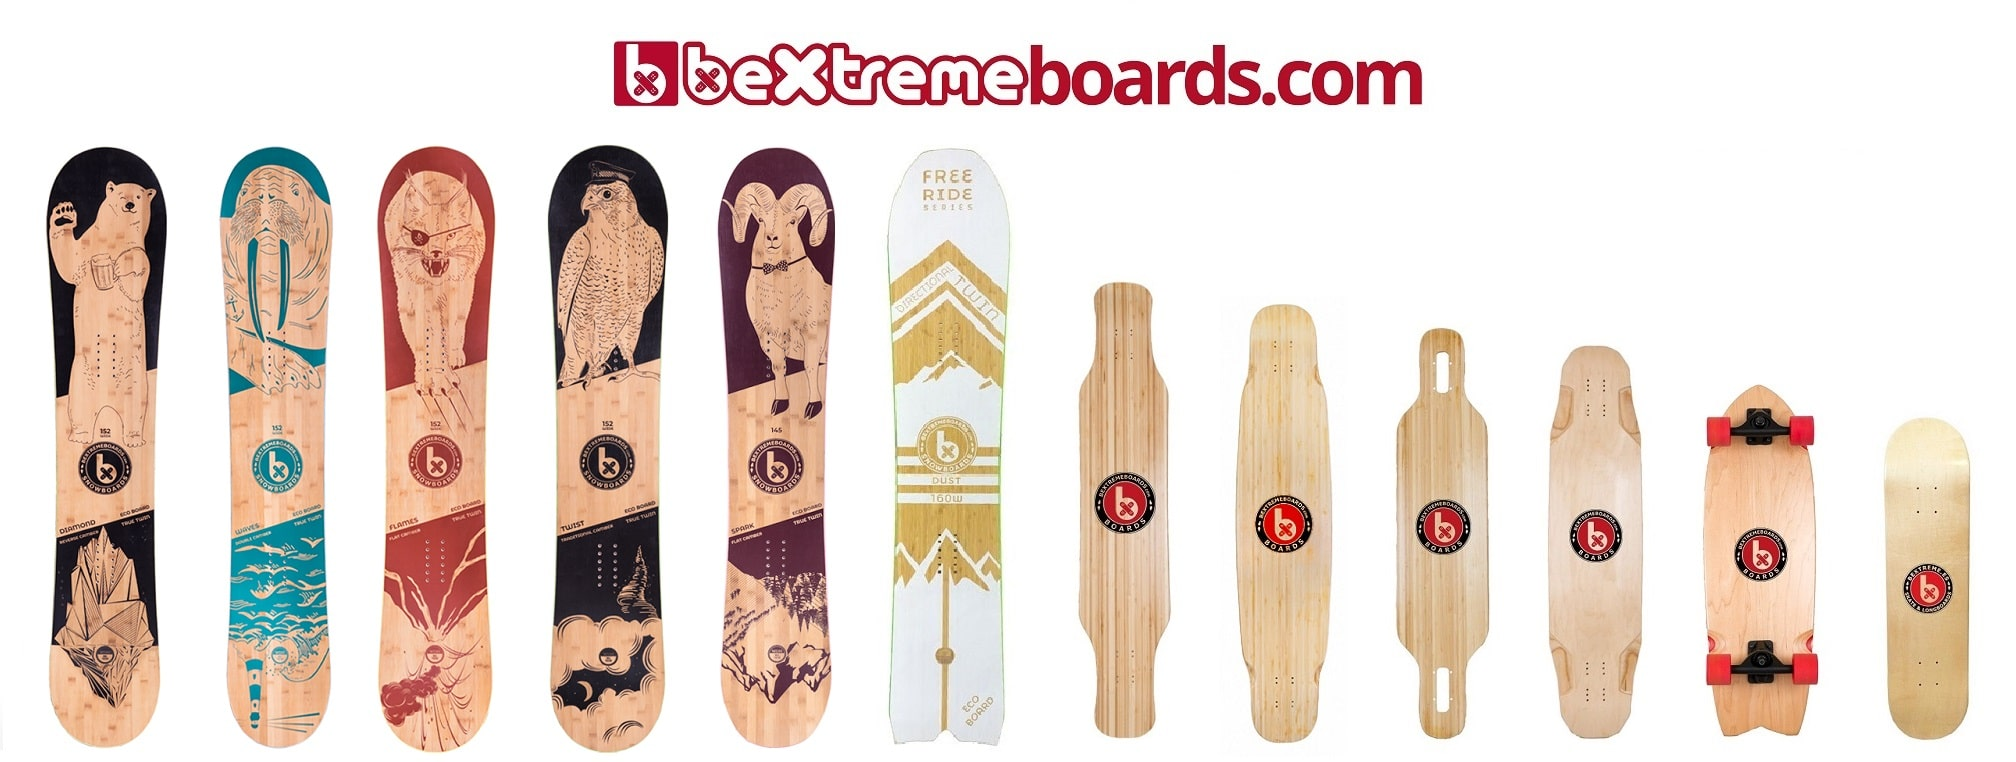 SNOWBOARDS-LONGBOARDS BEXTREME 2020